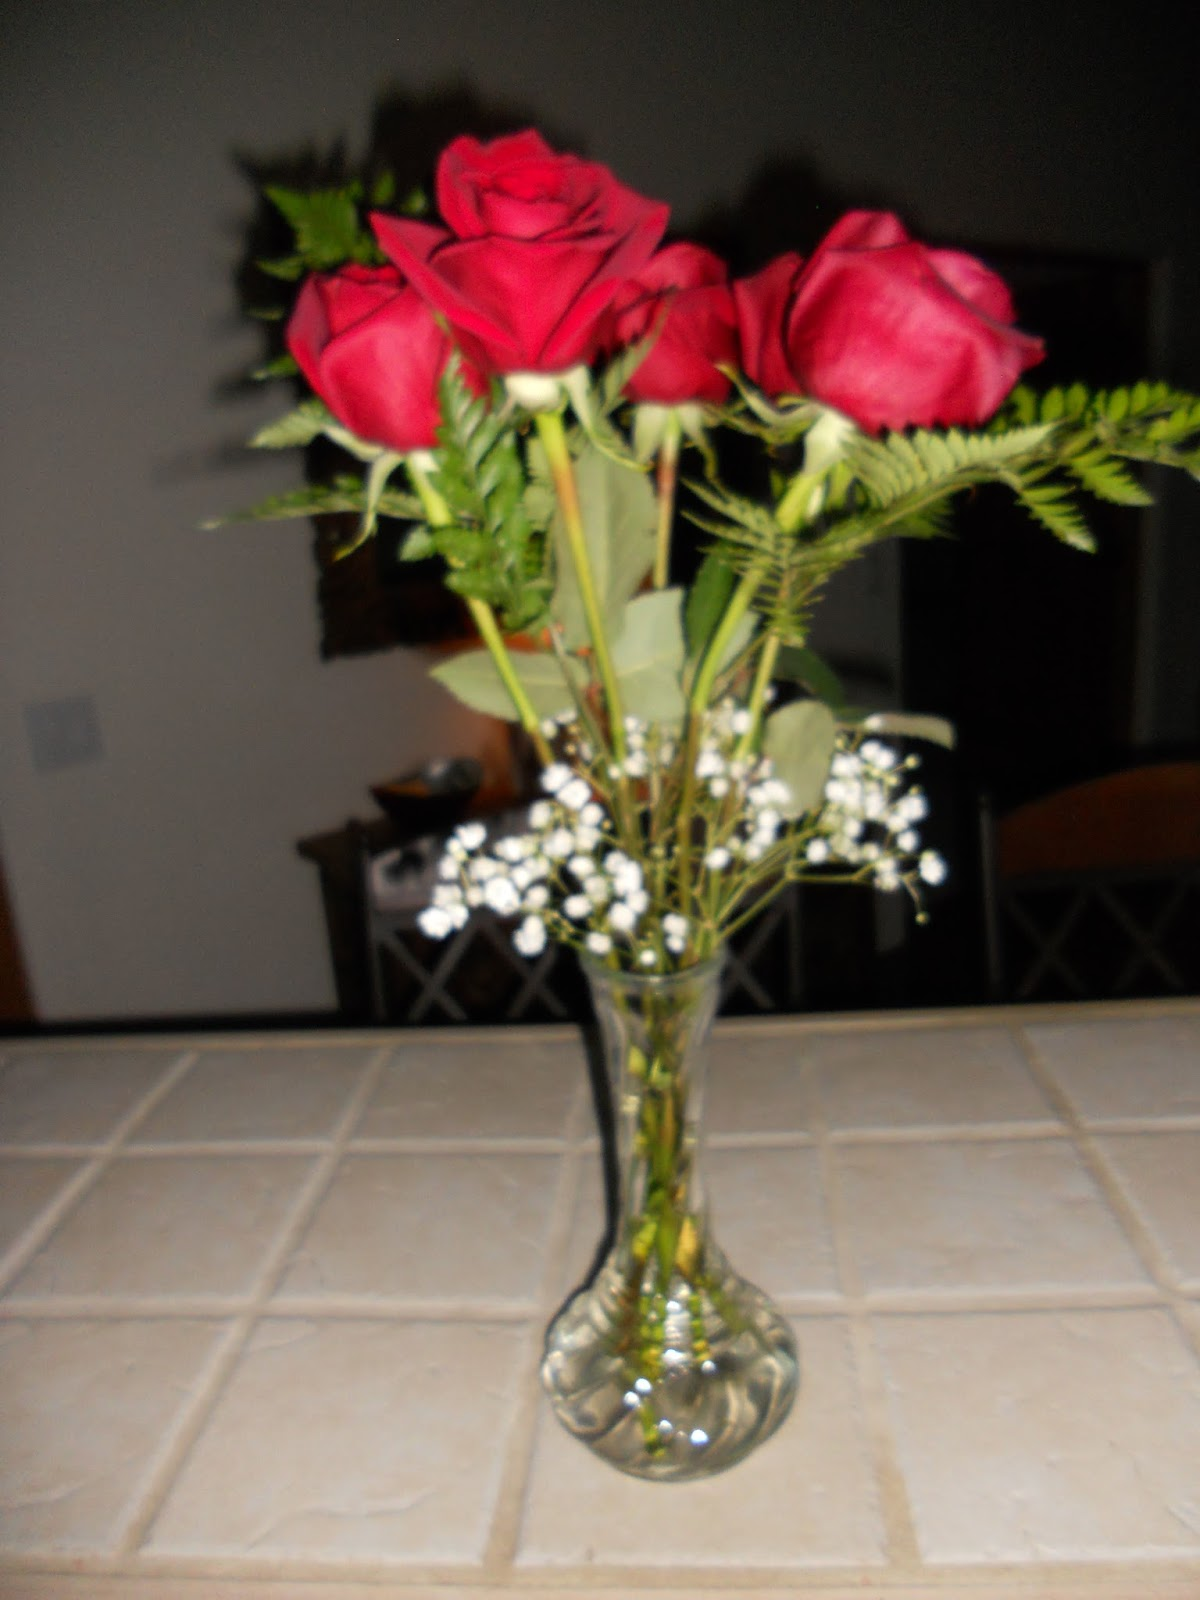 The unexpected life beauty and the beast red roses she had in a vase by her bed and started cutting the stem pretty short where do these spontaneously sporadic actions come from izmirmasajfo